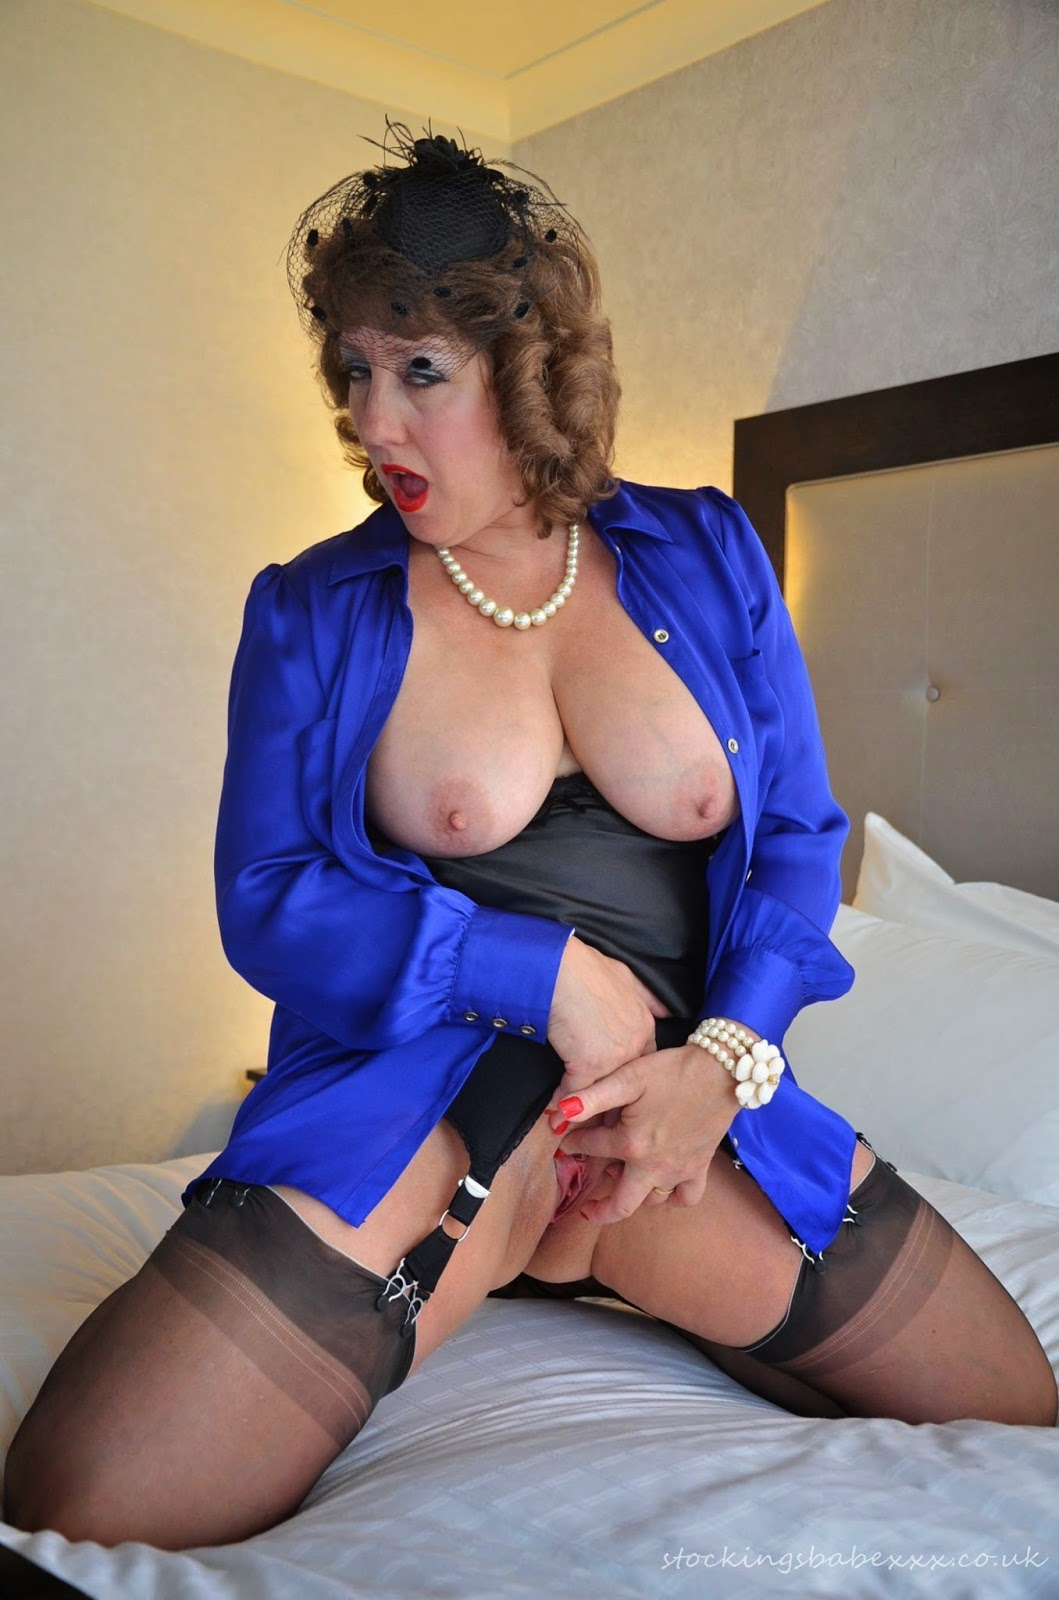 Xxx Mature Stockings 76